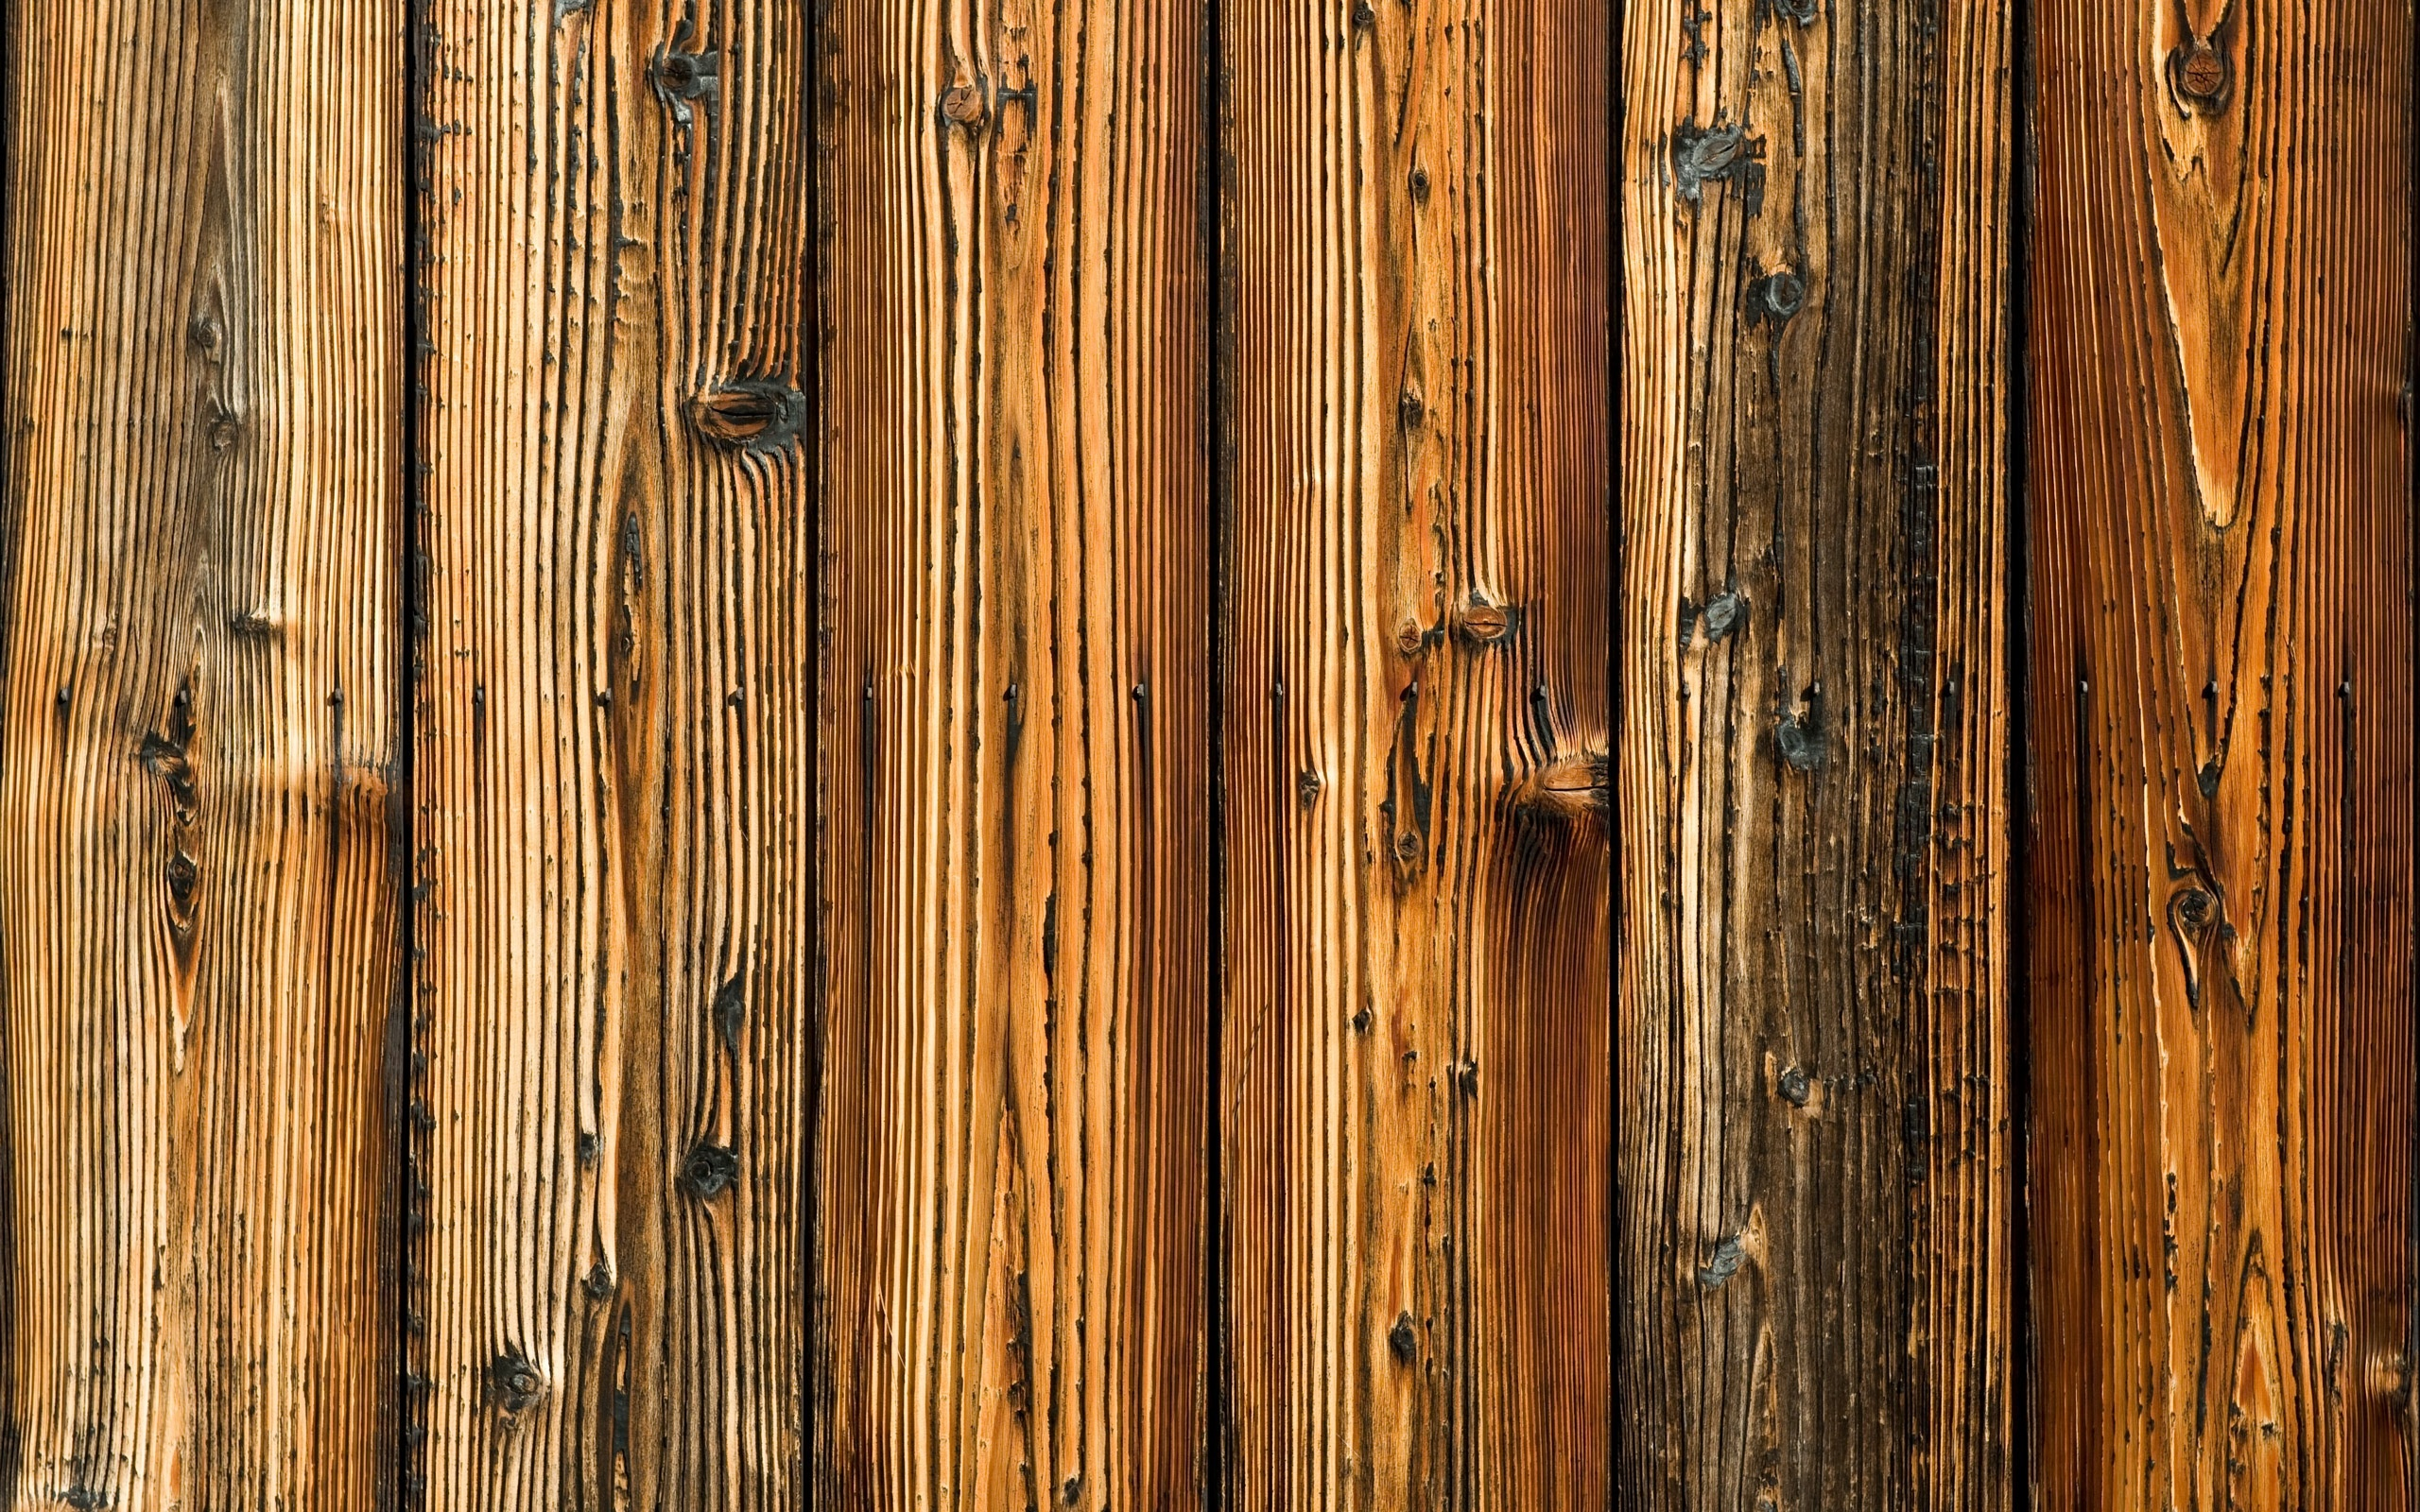 textures wood board free wallpaper 2560x1600 full hd wallpapers